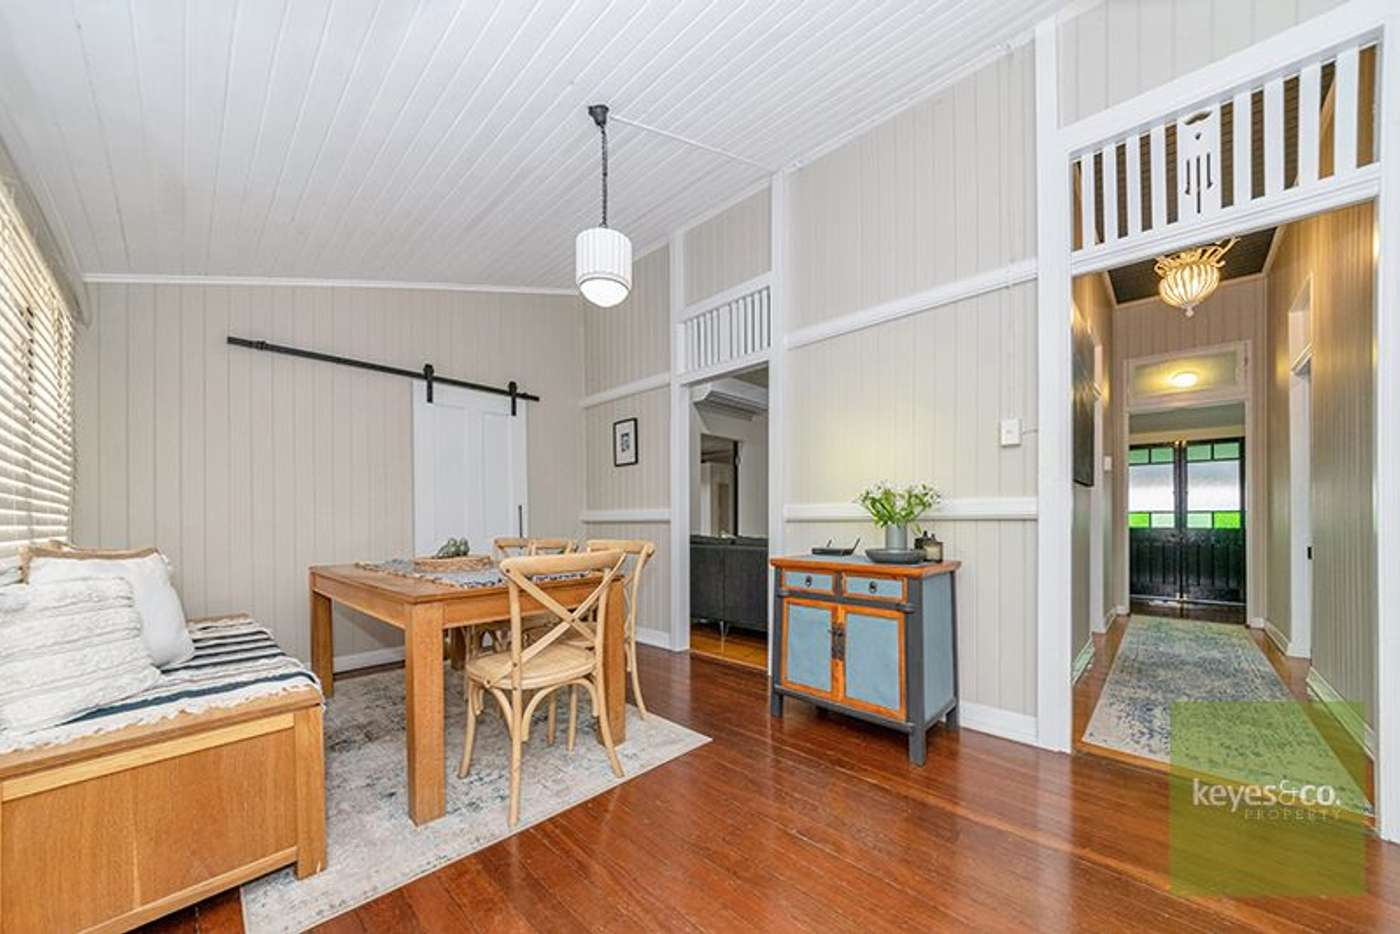 Sixth view of Homely house listing, 70 Ninth Avenue, Railway Estate QLD 4810